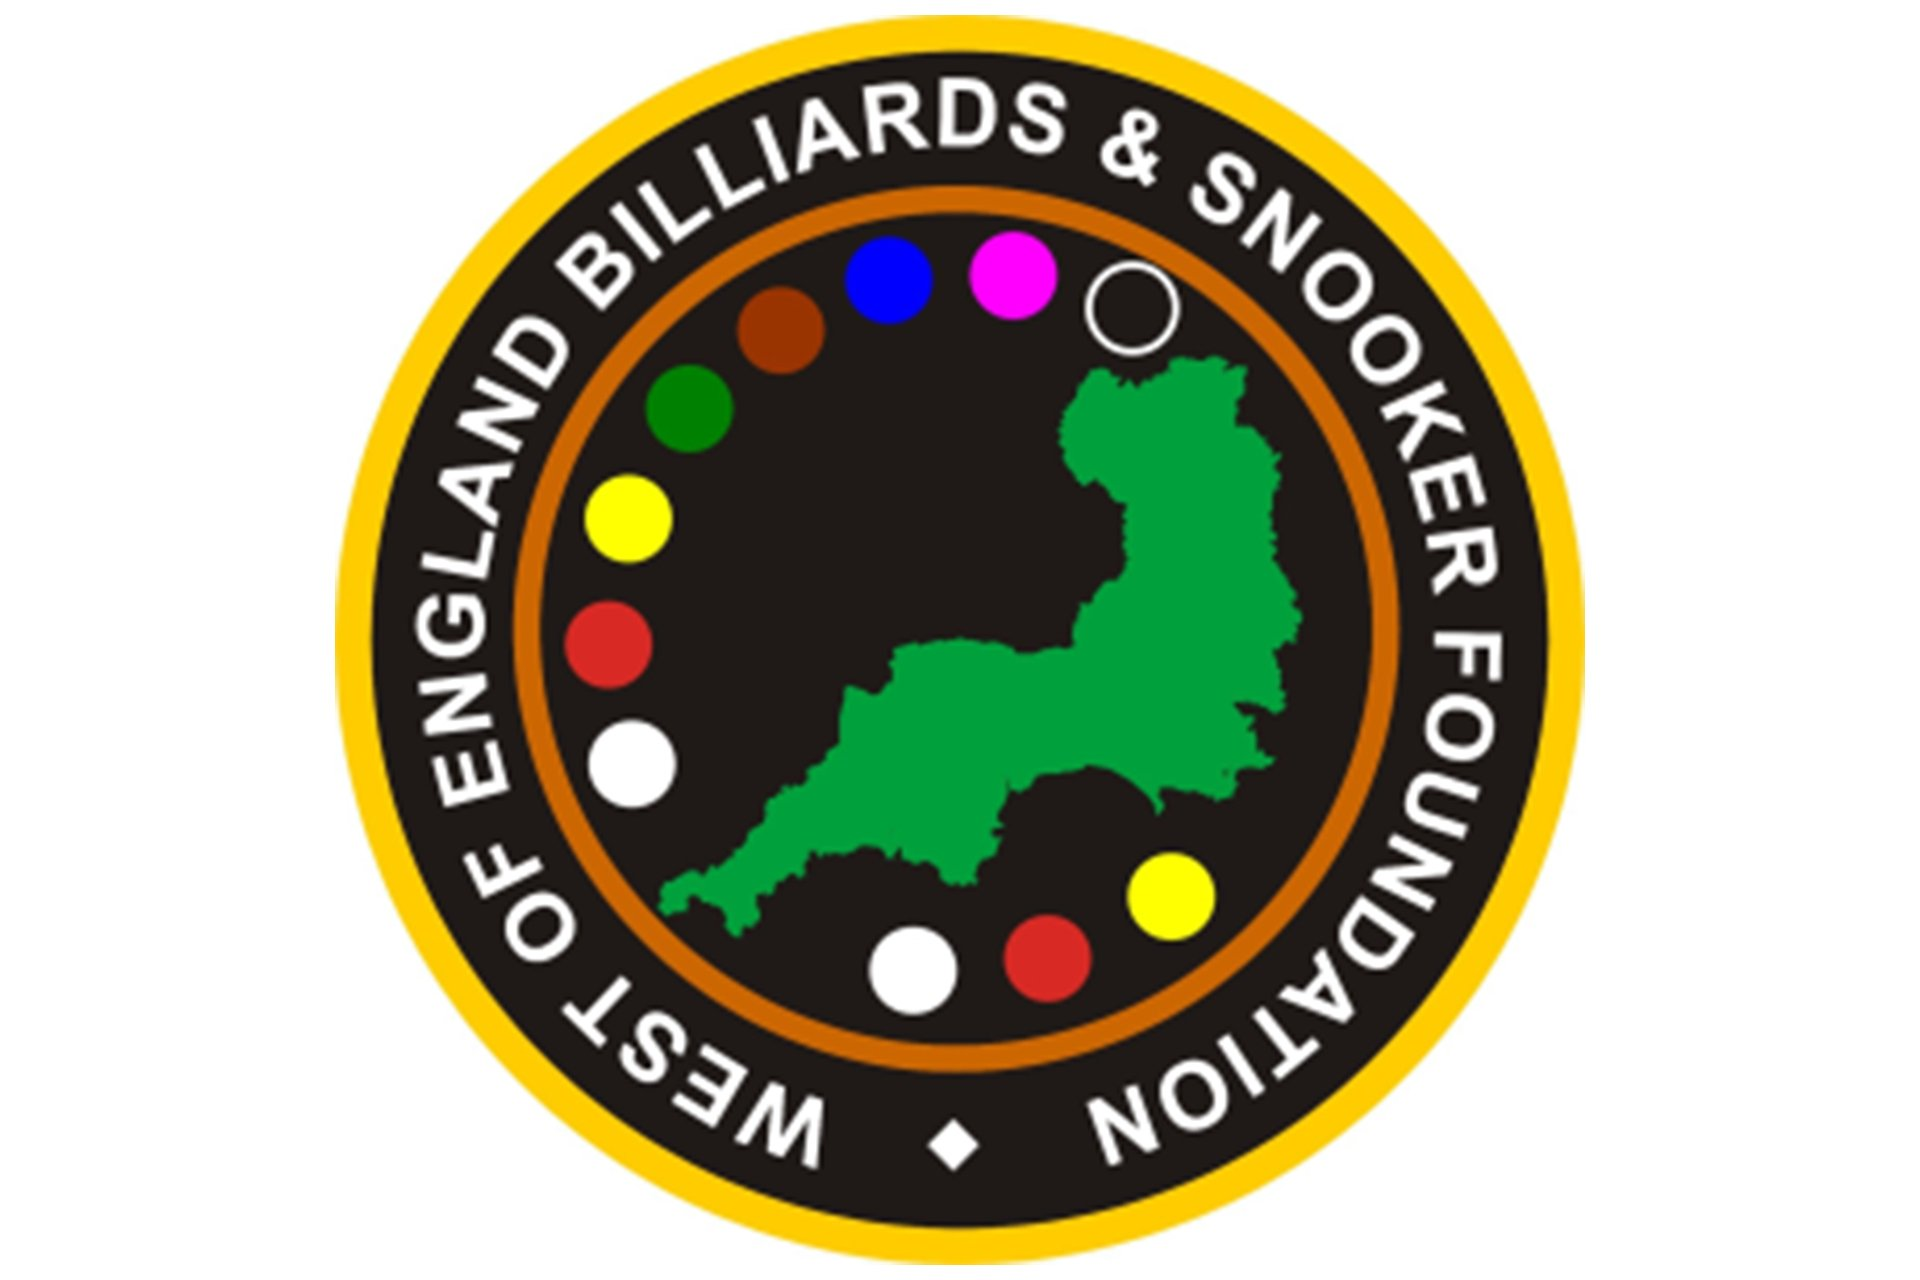 West Of England Billiards & Snooker Foundation